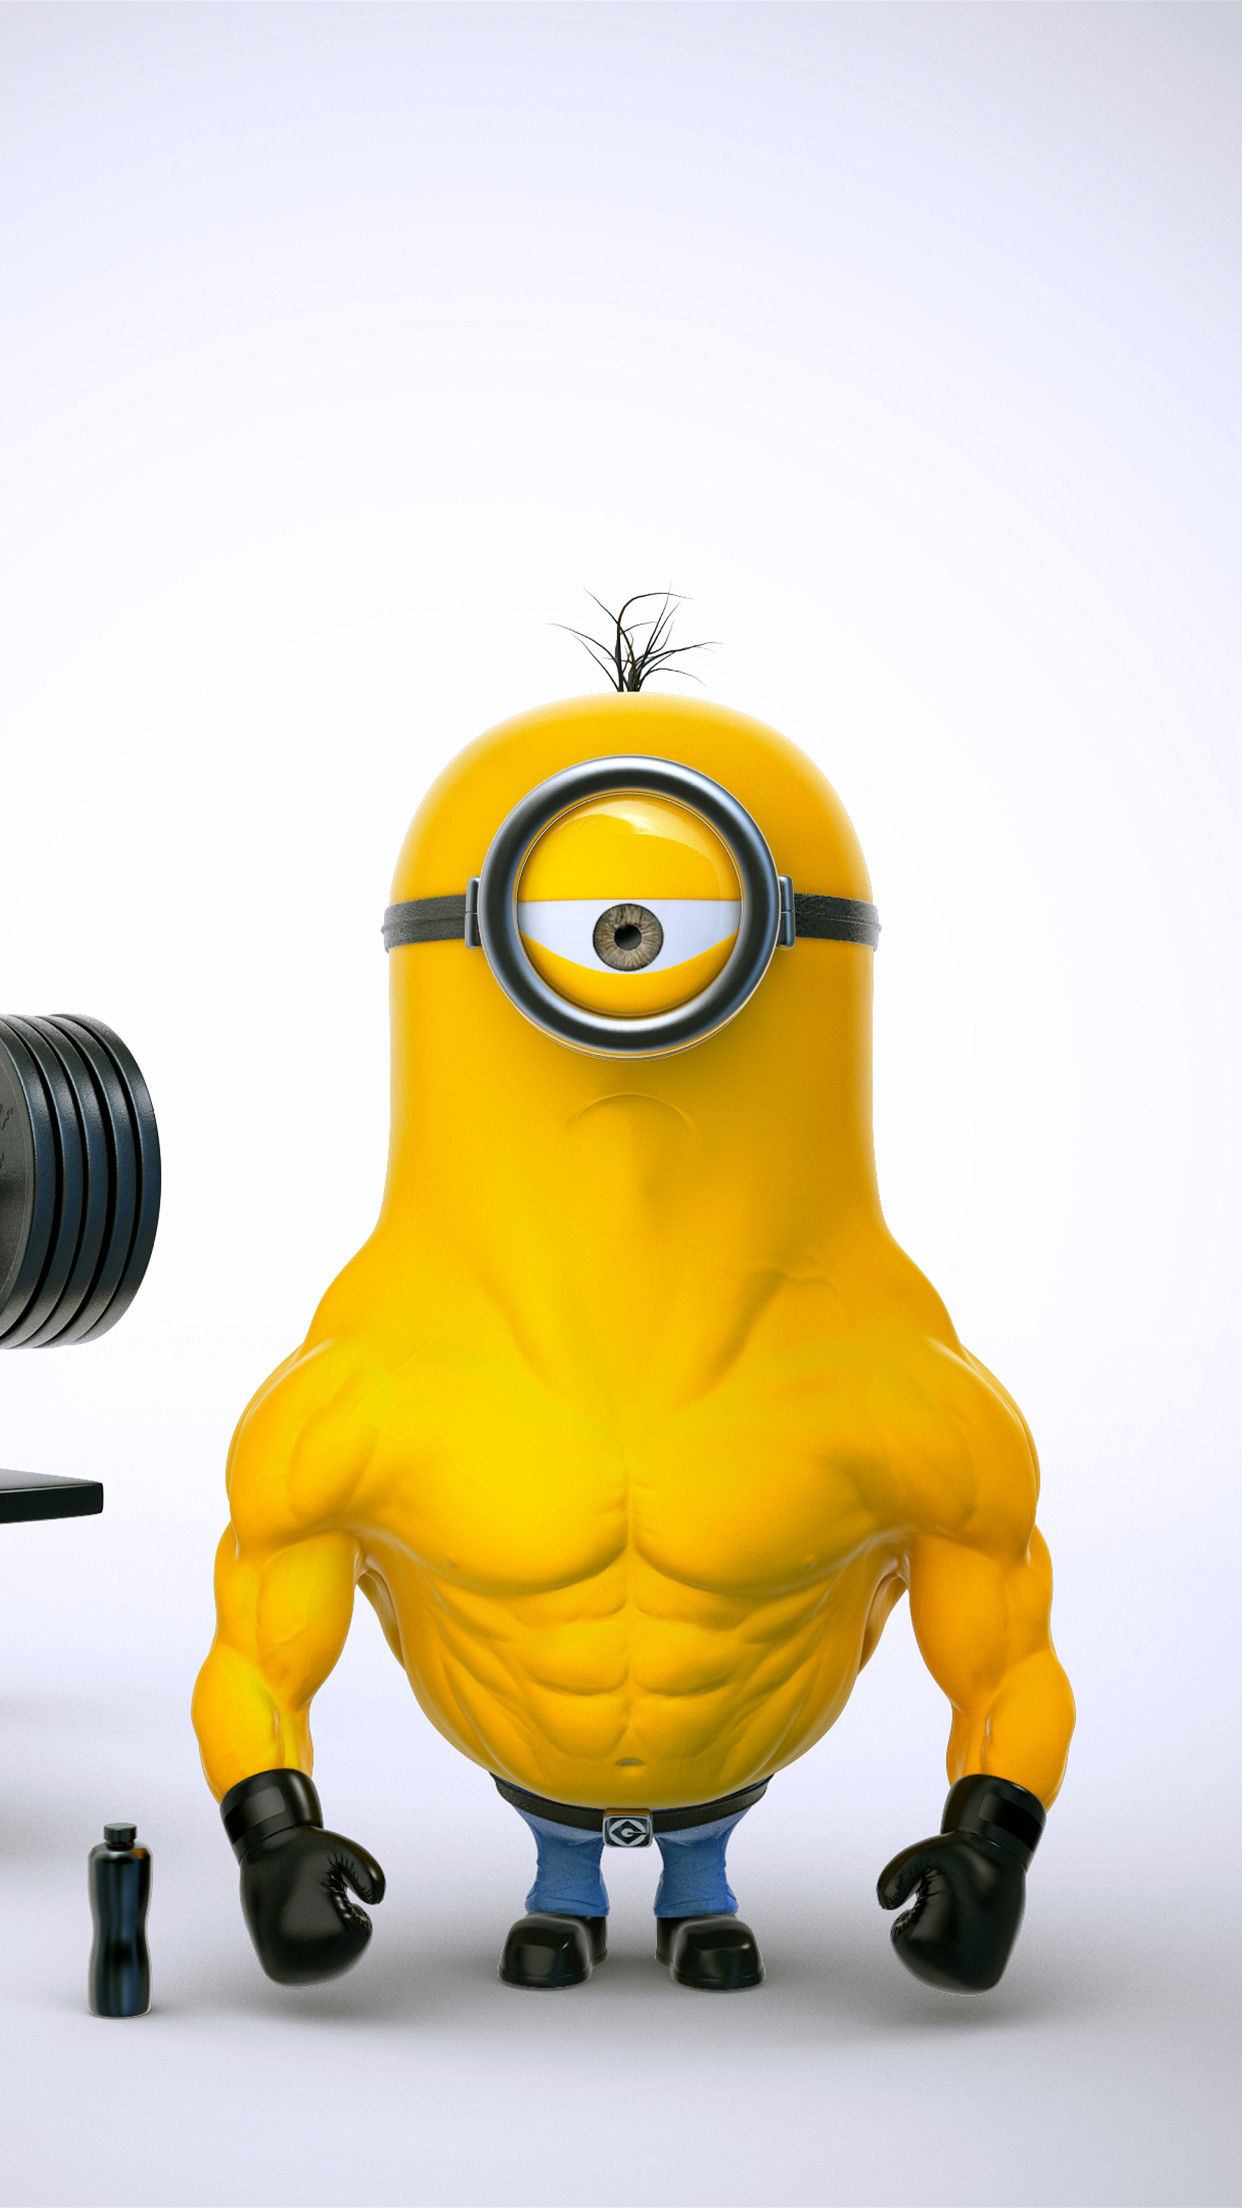 1242x2208 Minion-Muscle-iPhone-3Wallpapers-Parallax